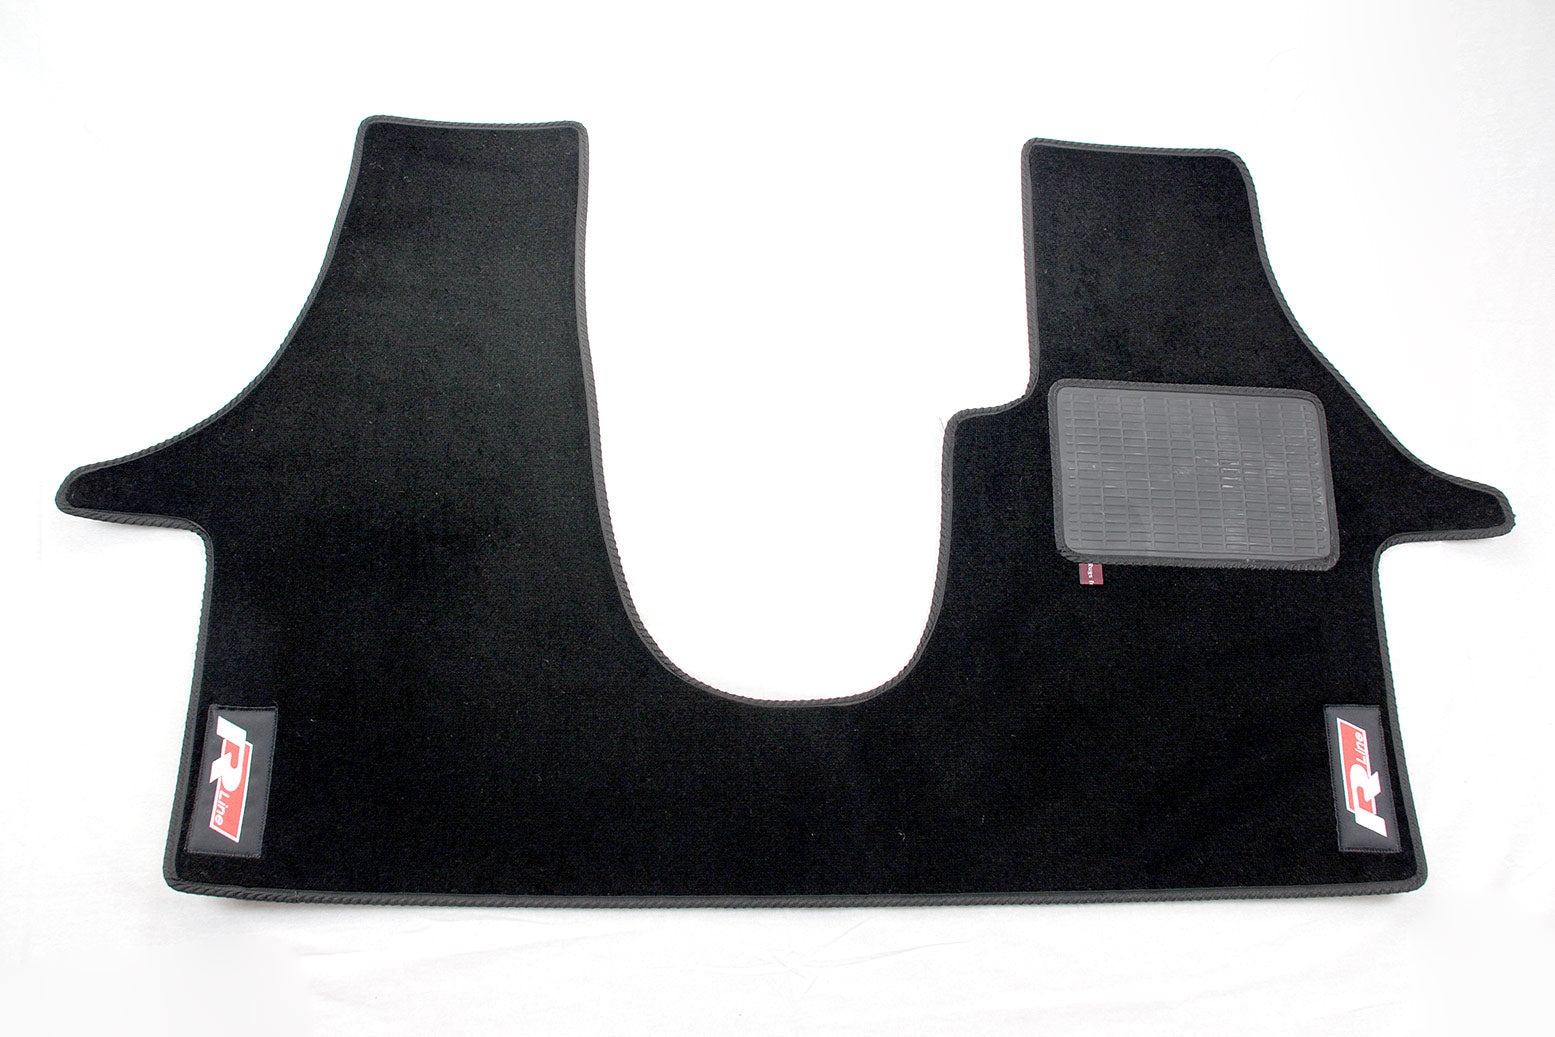 T6 2 plus 1 cab mat with embroidered R lIne logo